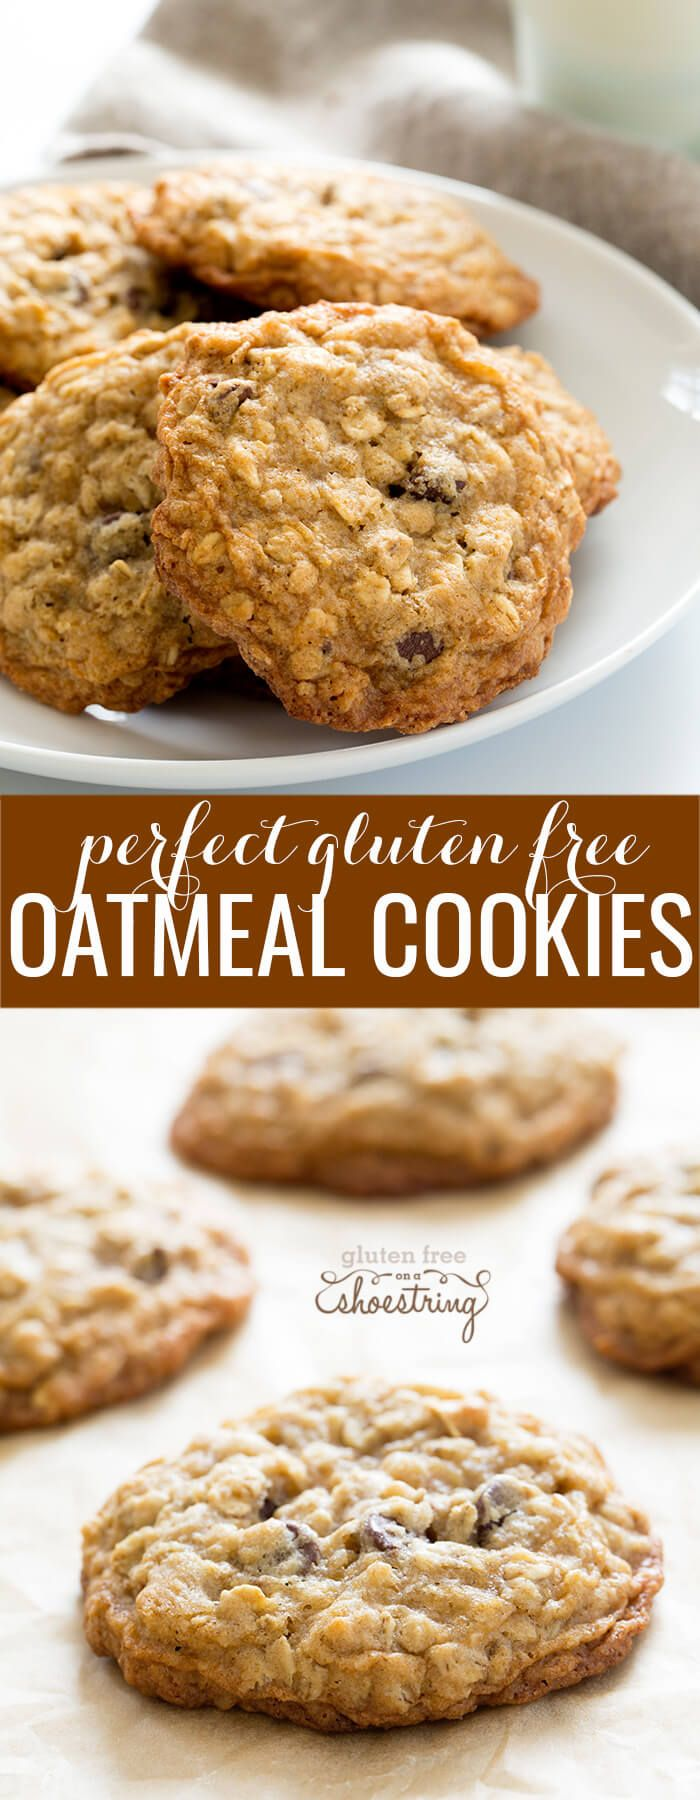 This simple recipe for thick and chewy gluten free oatmeal cookies is crispy around the edges, soft and chewy the rest of the way through. In other words, perfect.